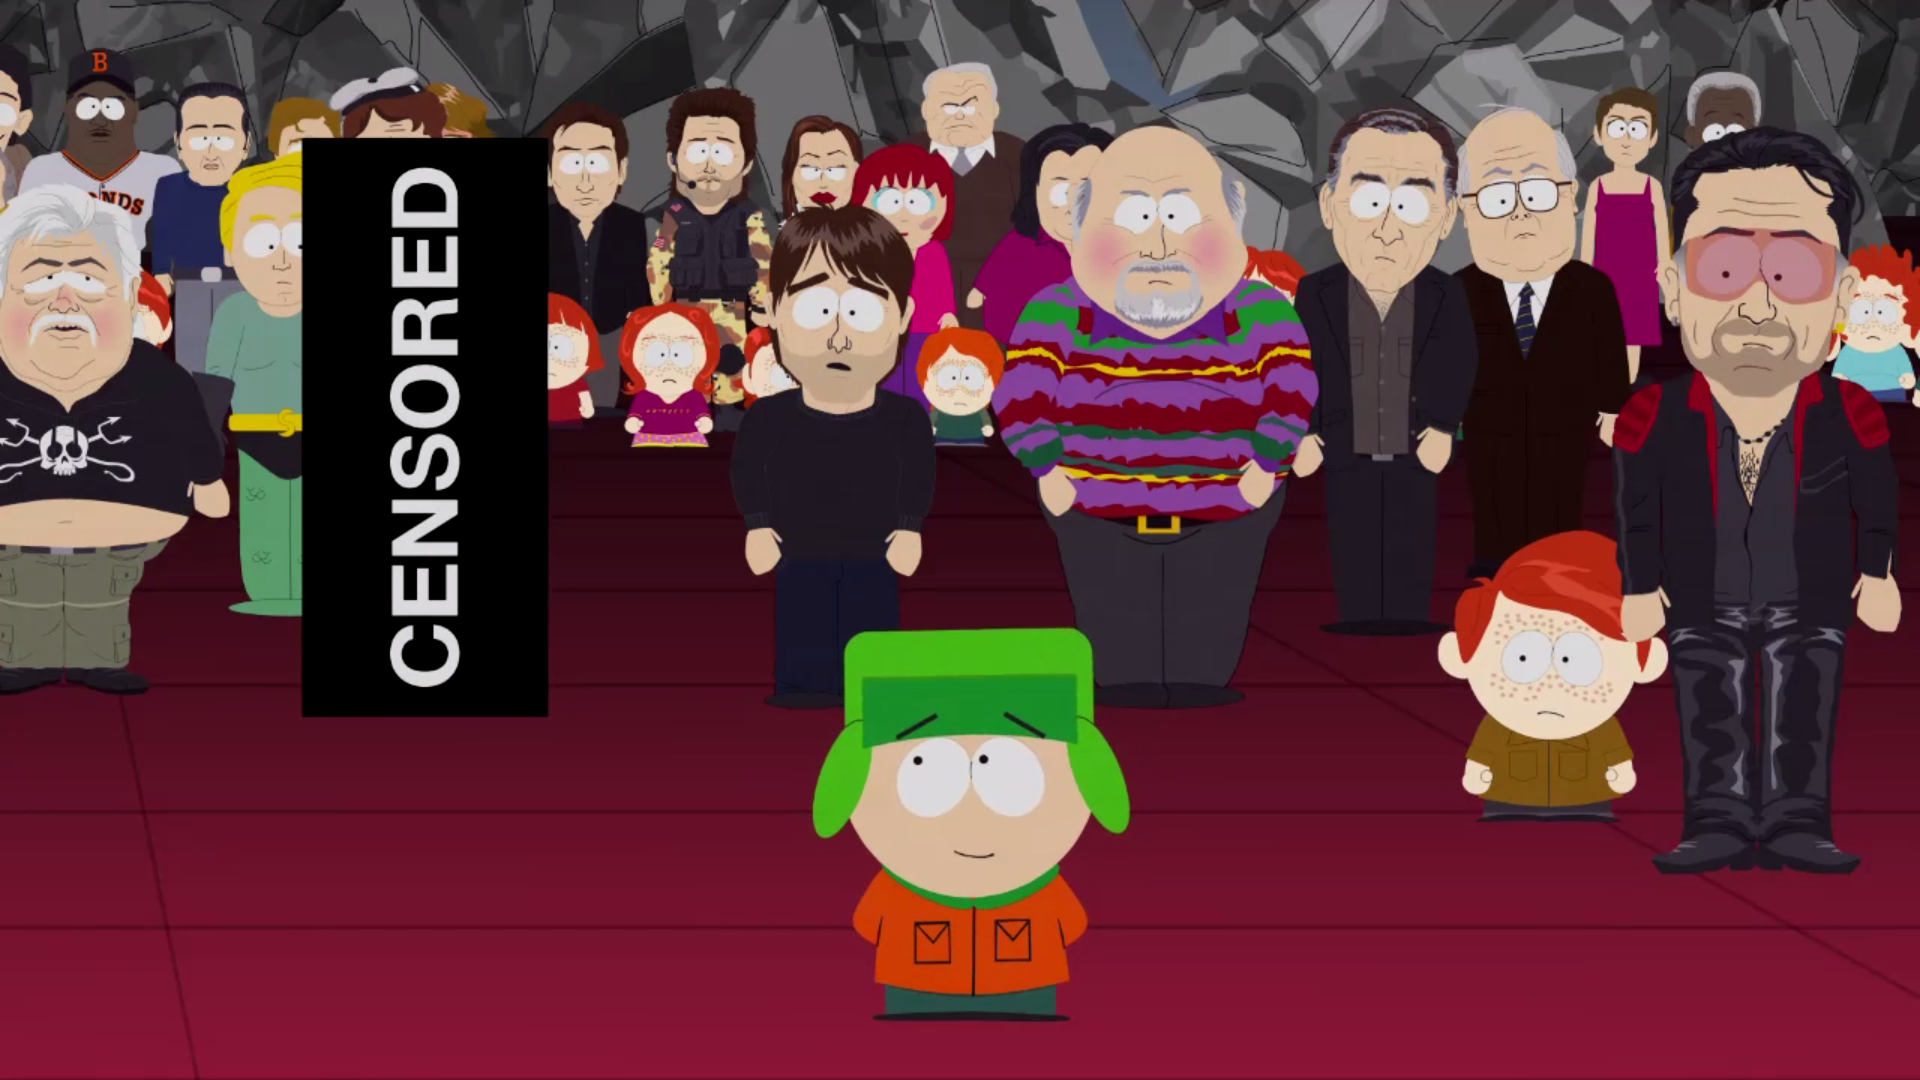 south park episode where they write their essays